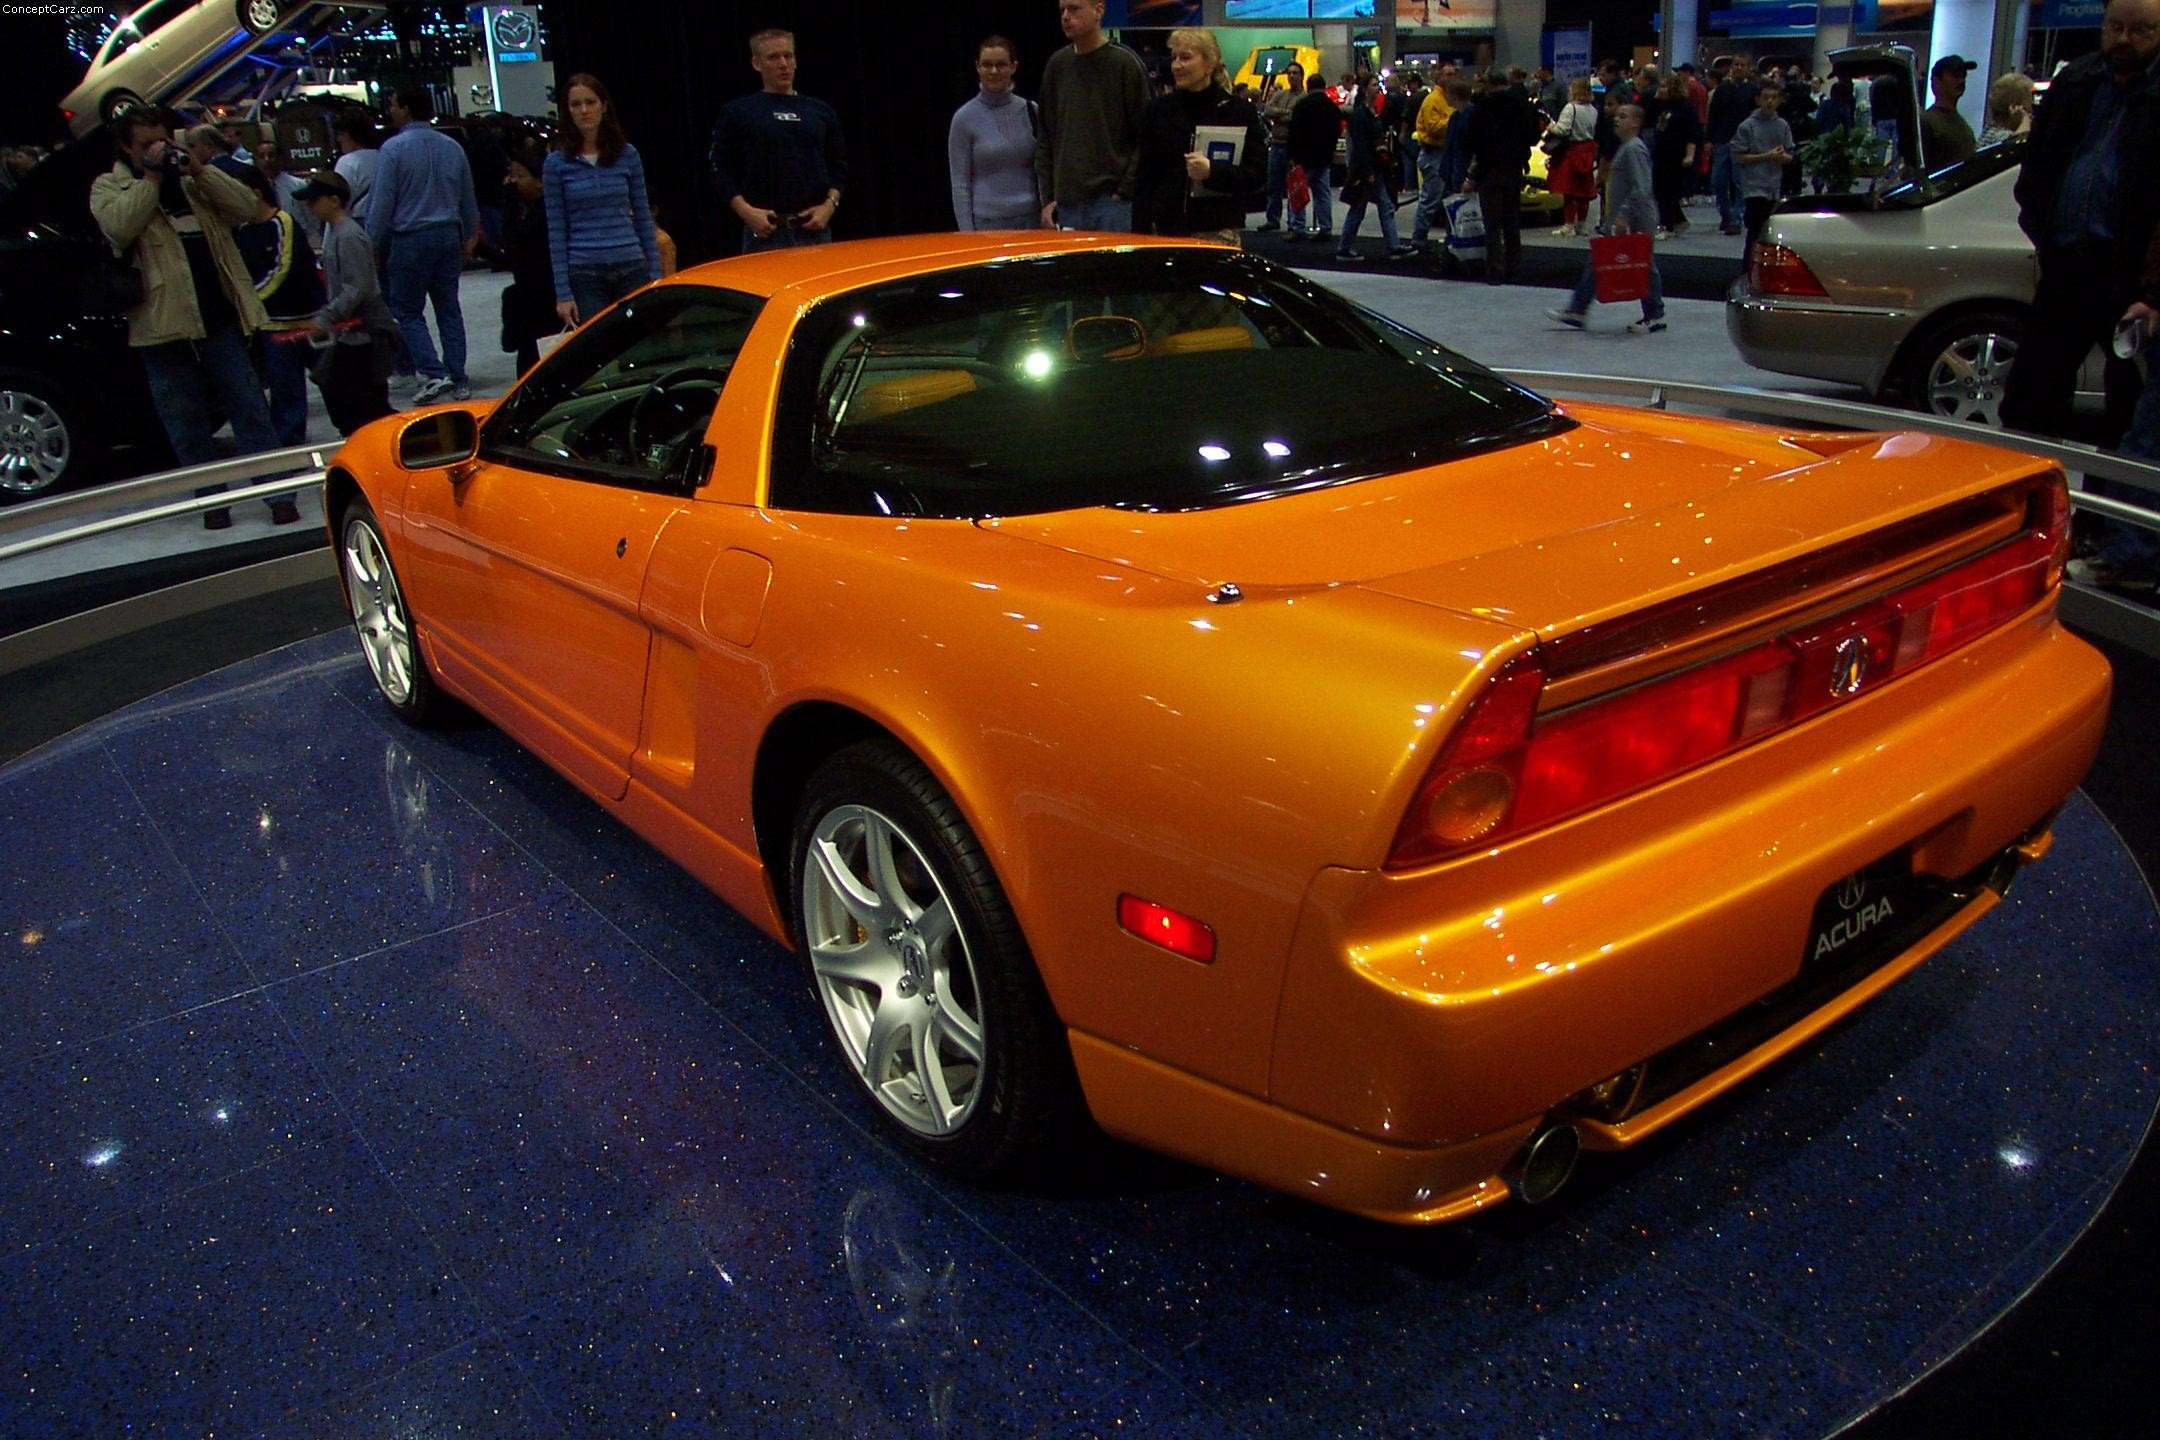 2002 acura nsx images photo 02acura nsx chicago. Black Bedroom Furniture Sets. Home Design Ideas